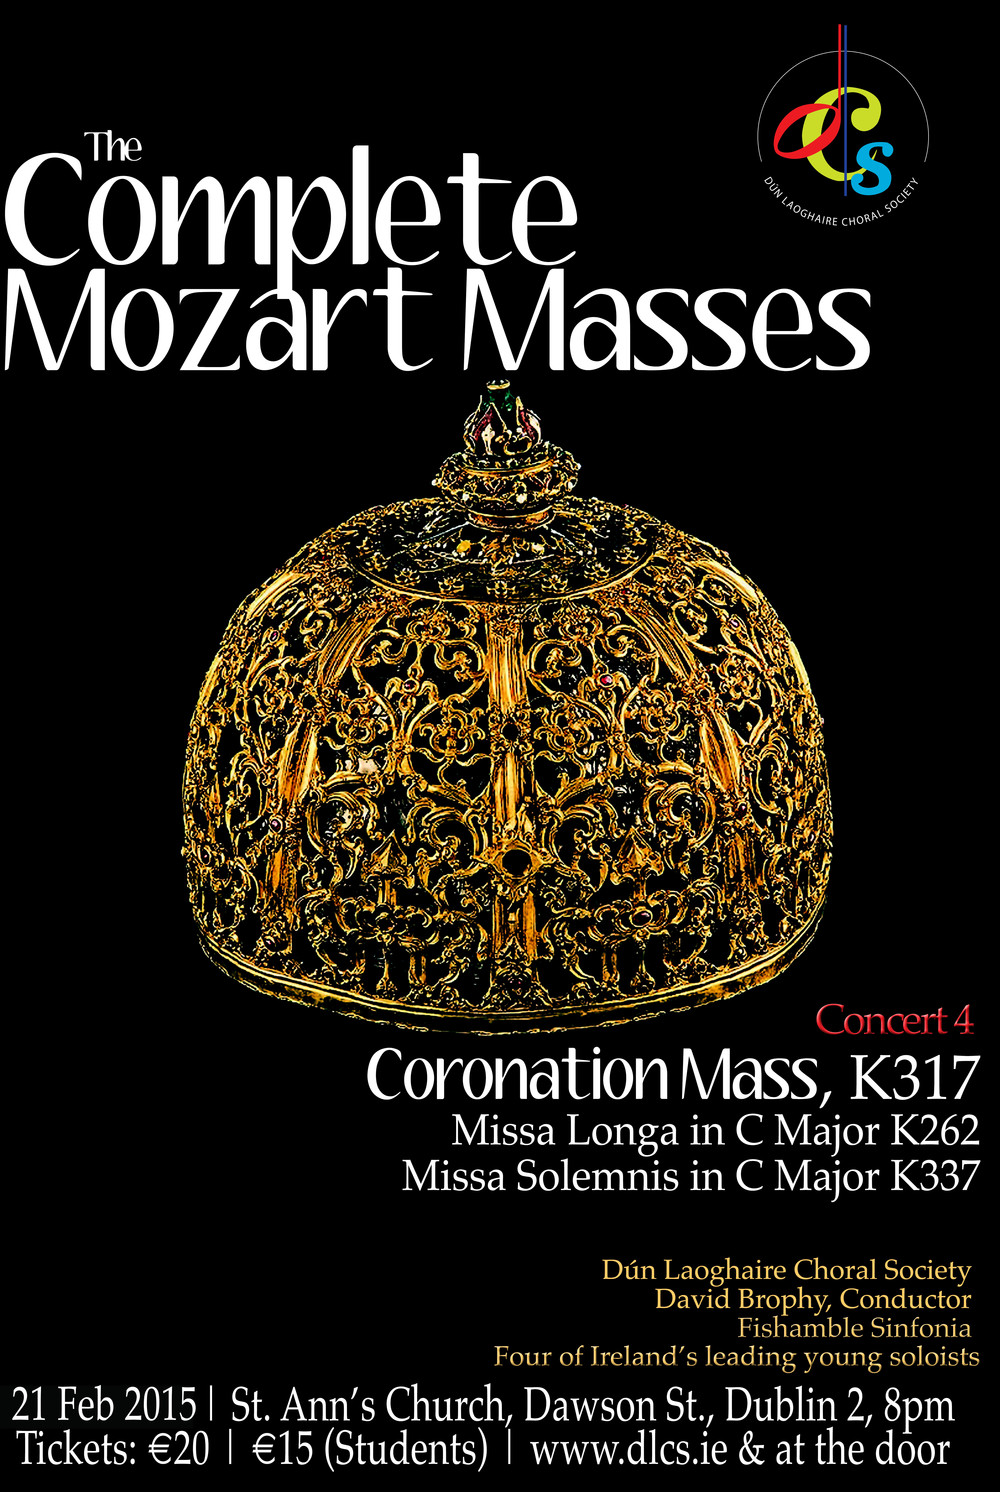 Complete Mozart Masses Concert 4, 21 February 2015